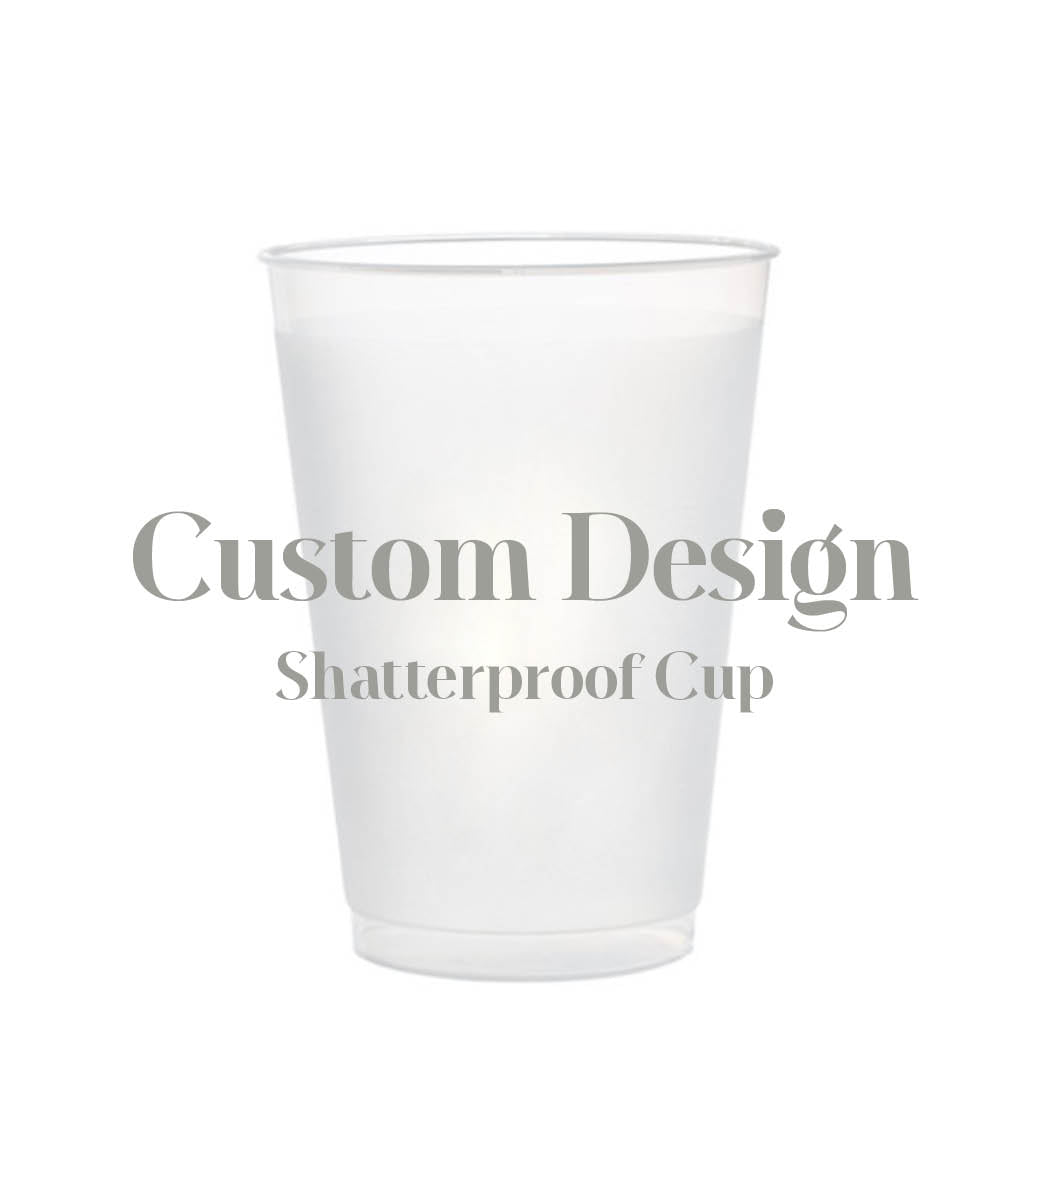 Shatterproof Cups | Custom Design